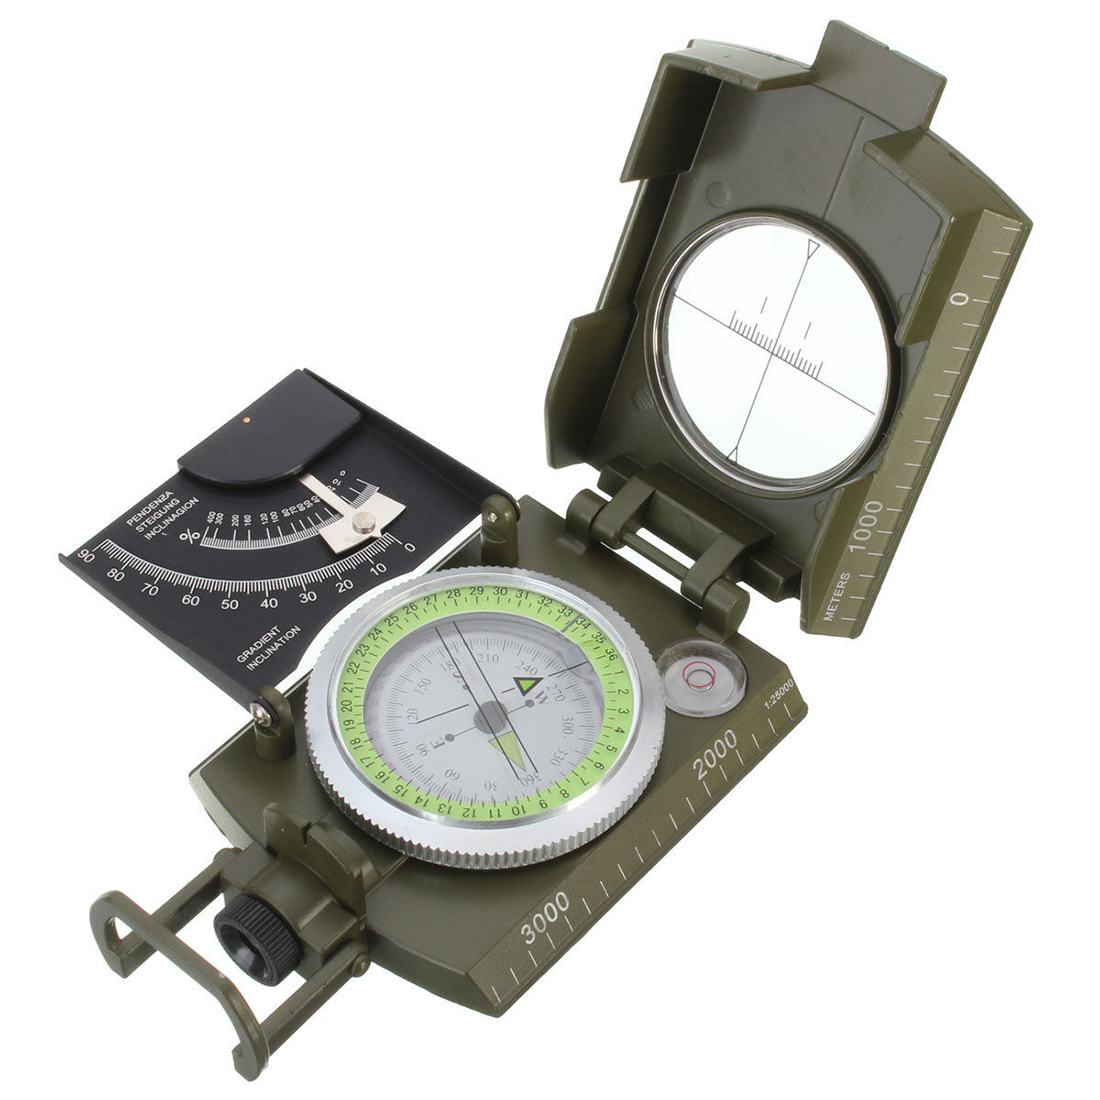 2018 New Professional Military Army Metal Sighting Compass clinometer Camping eyeskey compass waterproof professional aluminum sighting clinometer slope height measurement map outdoor compass fast shipping